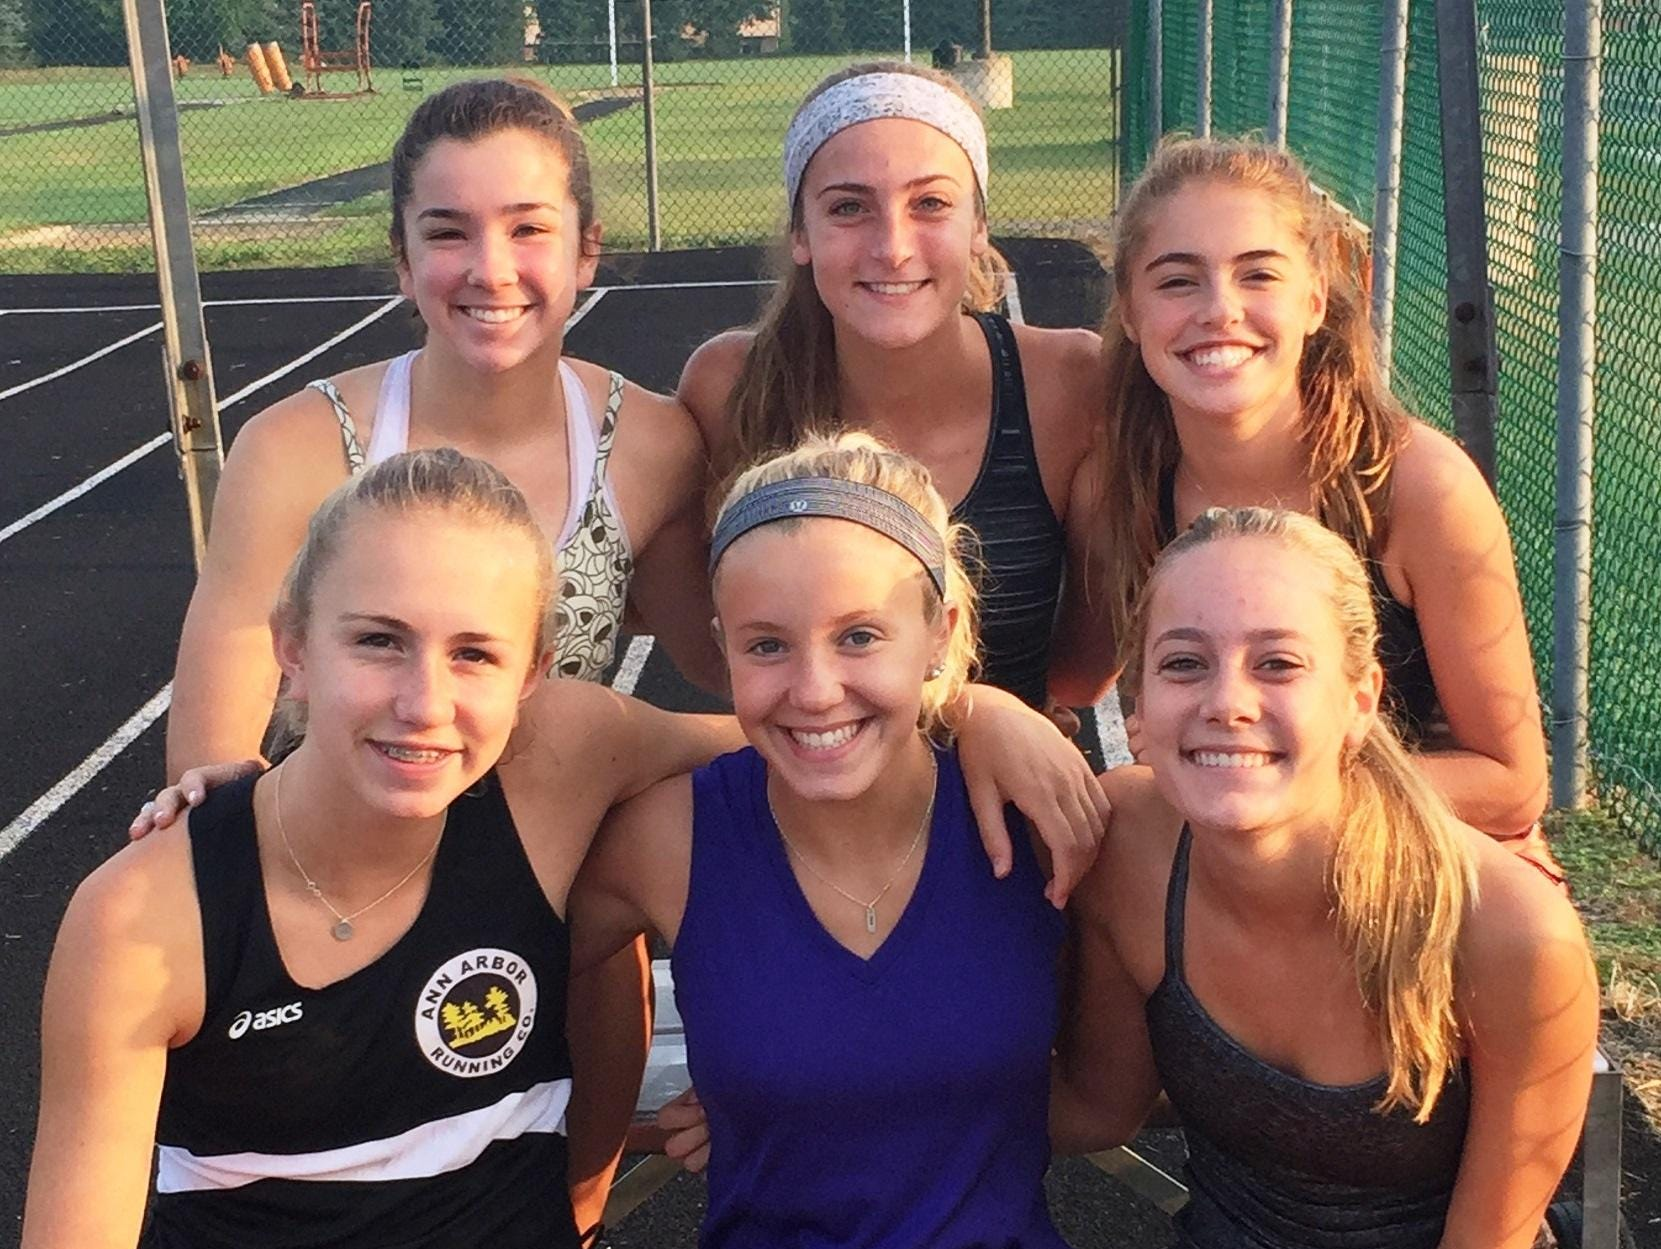 Northville returns its top six runners from a year ago, including (bottom row, from left) Lexa Barrott, Cayla Eckenroth and Hailey Harris, all all-staters and (back row, from left) Emma Herrmann, Emma Smith and Rachel Zimmer.